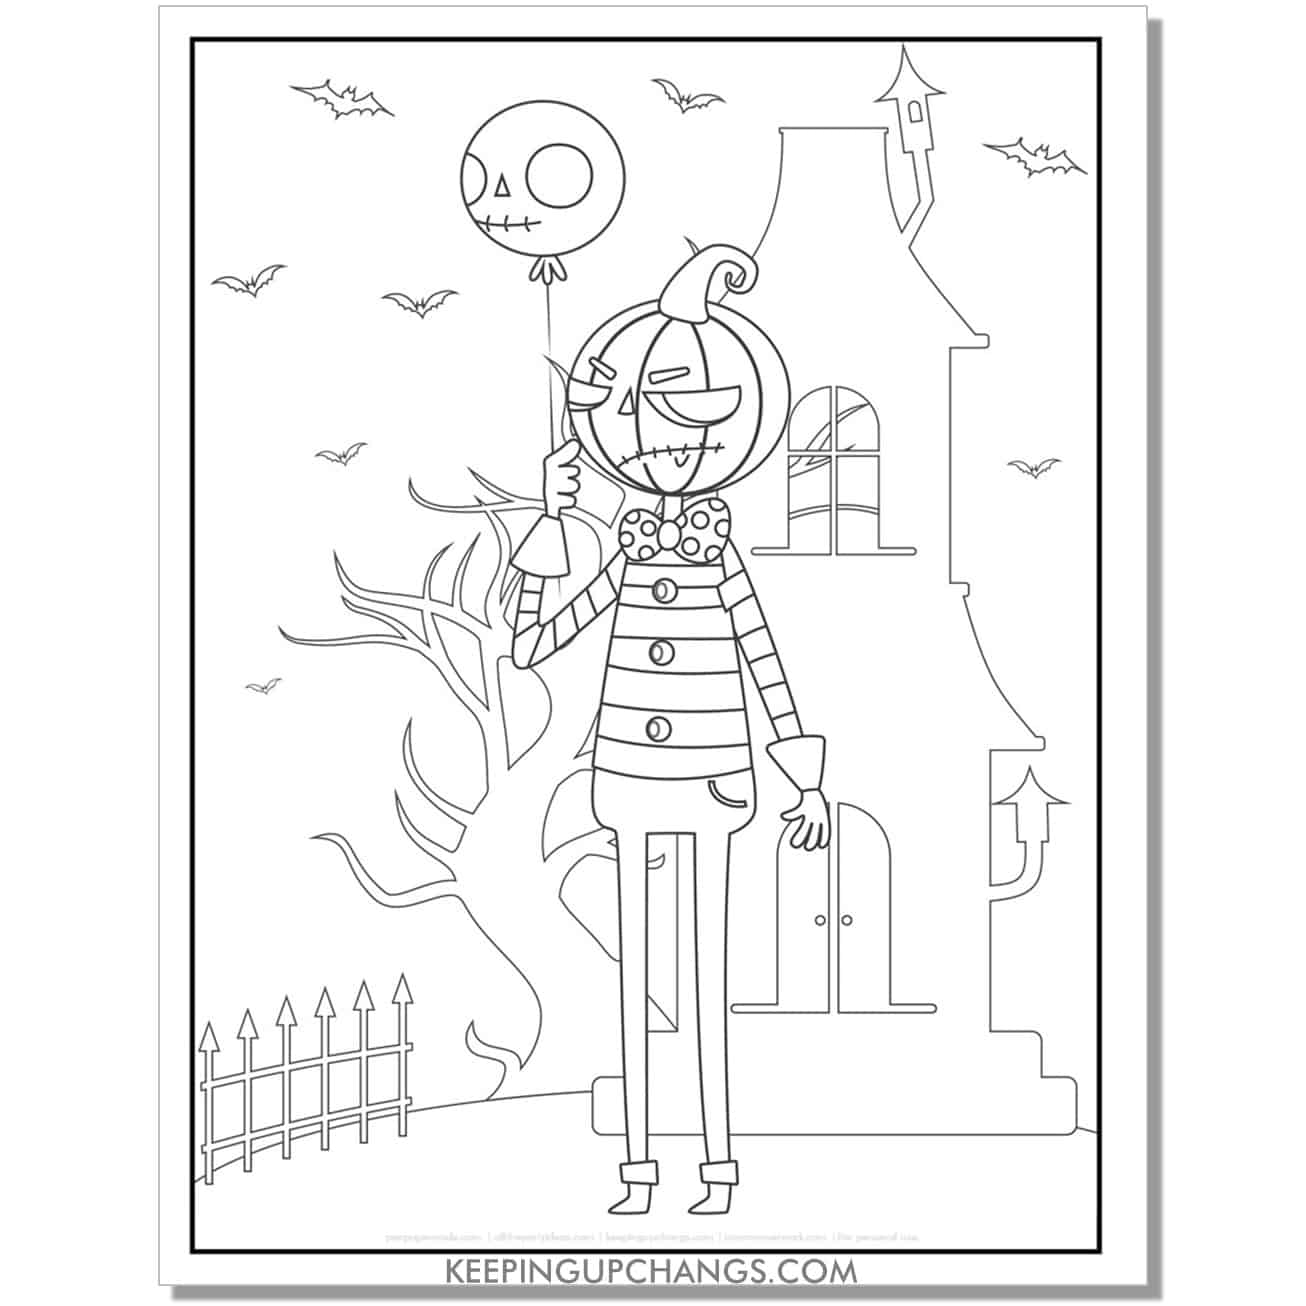 free jack o lantern and haunted house coloring page for kids.